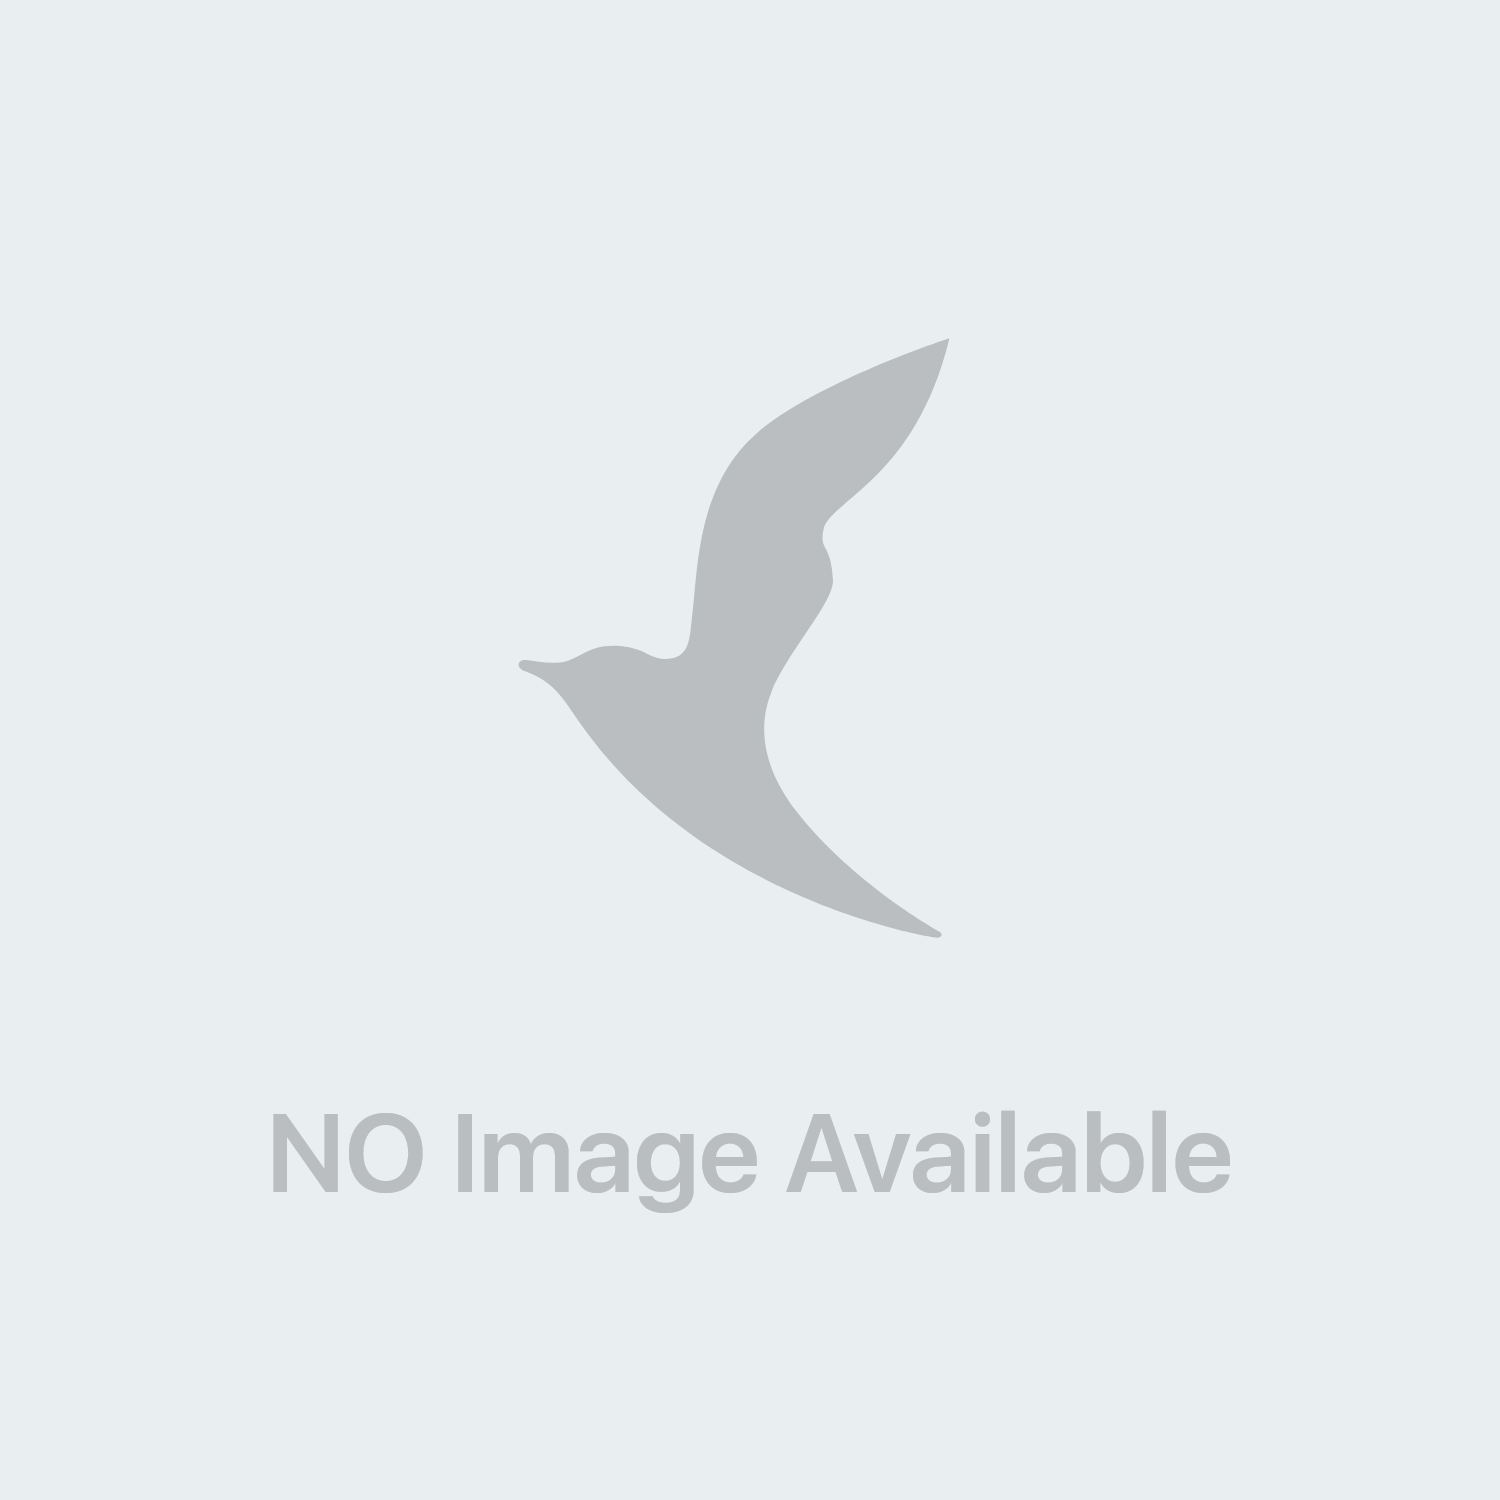 Korff Cure Make Up Terra Compatta Illuminante Trousse 9 g